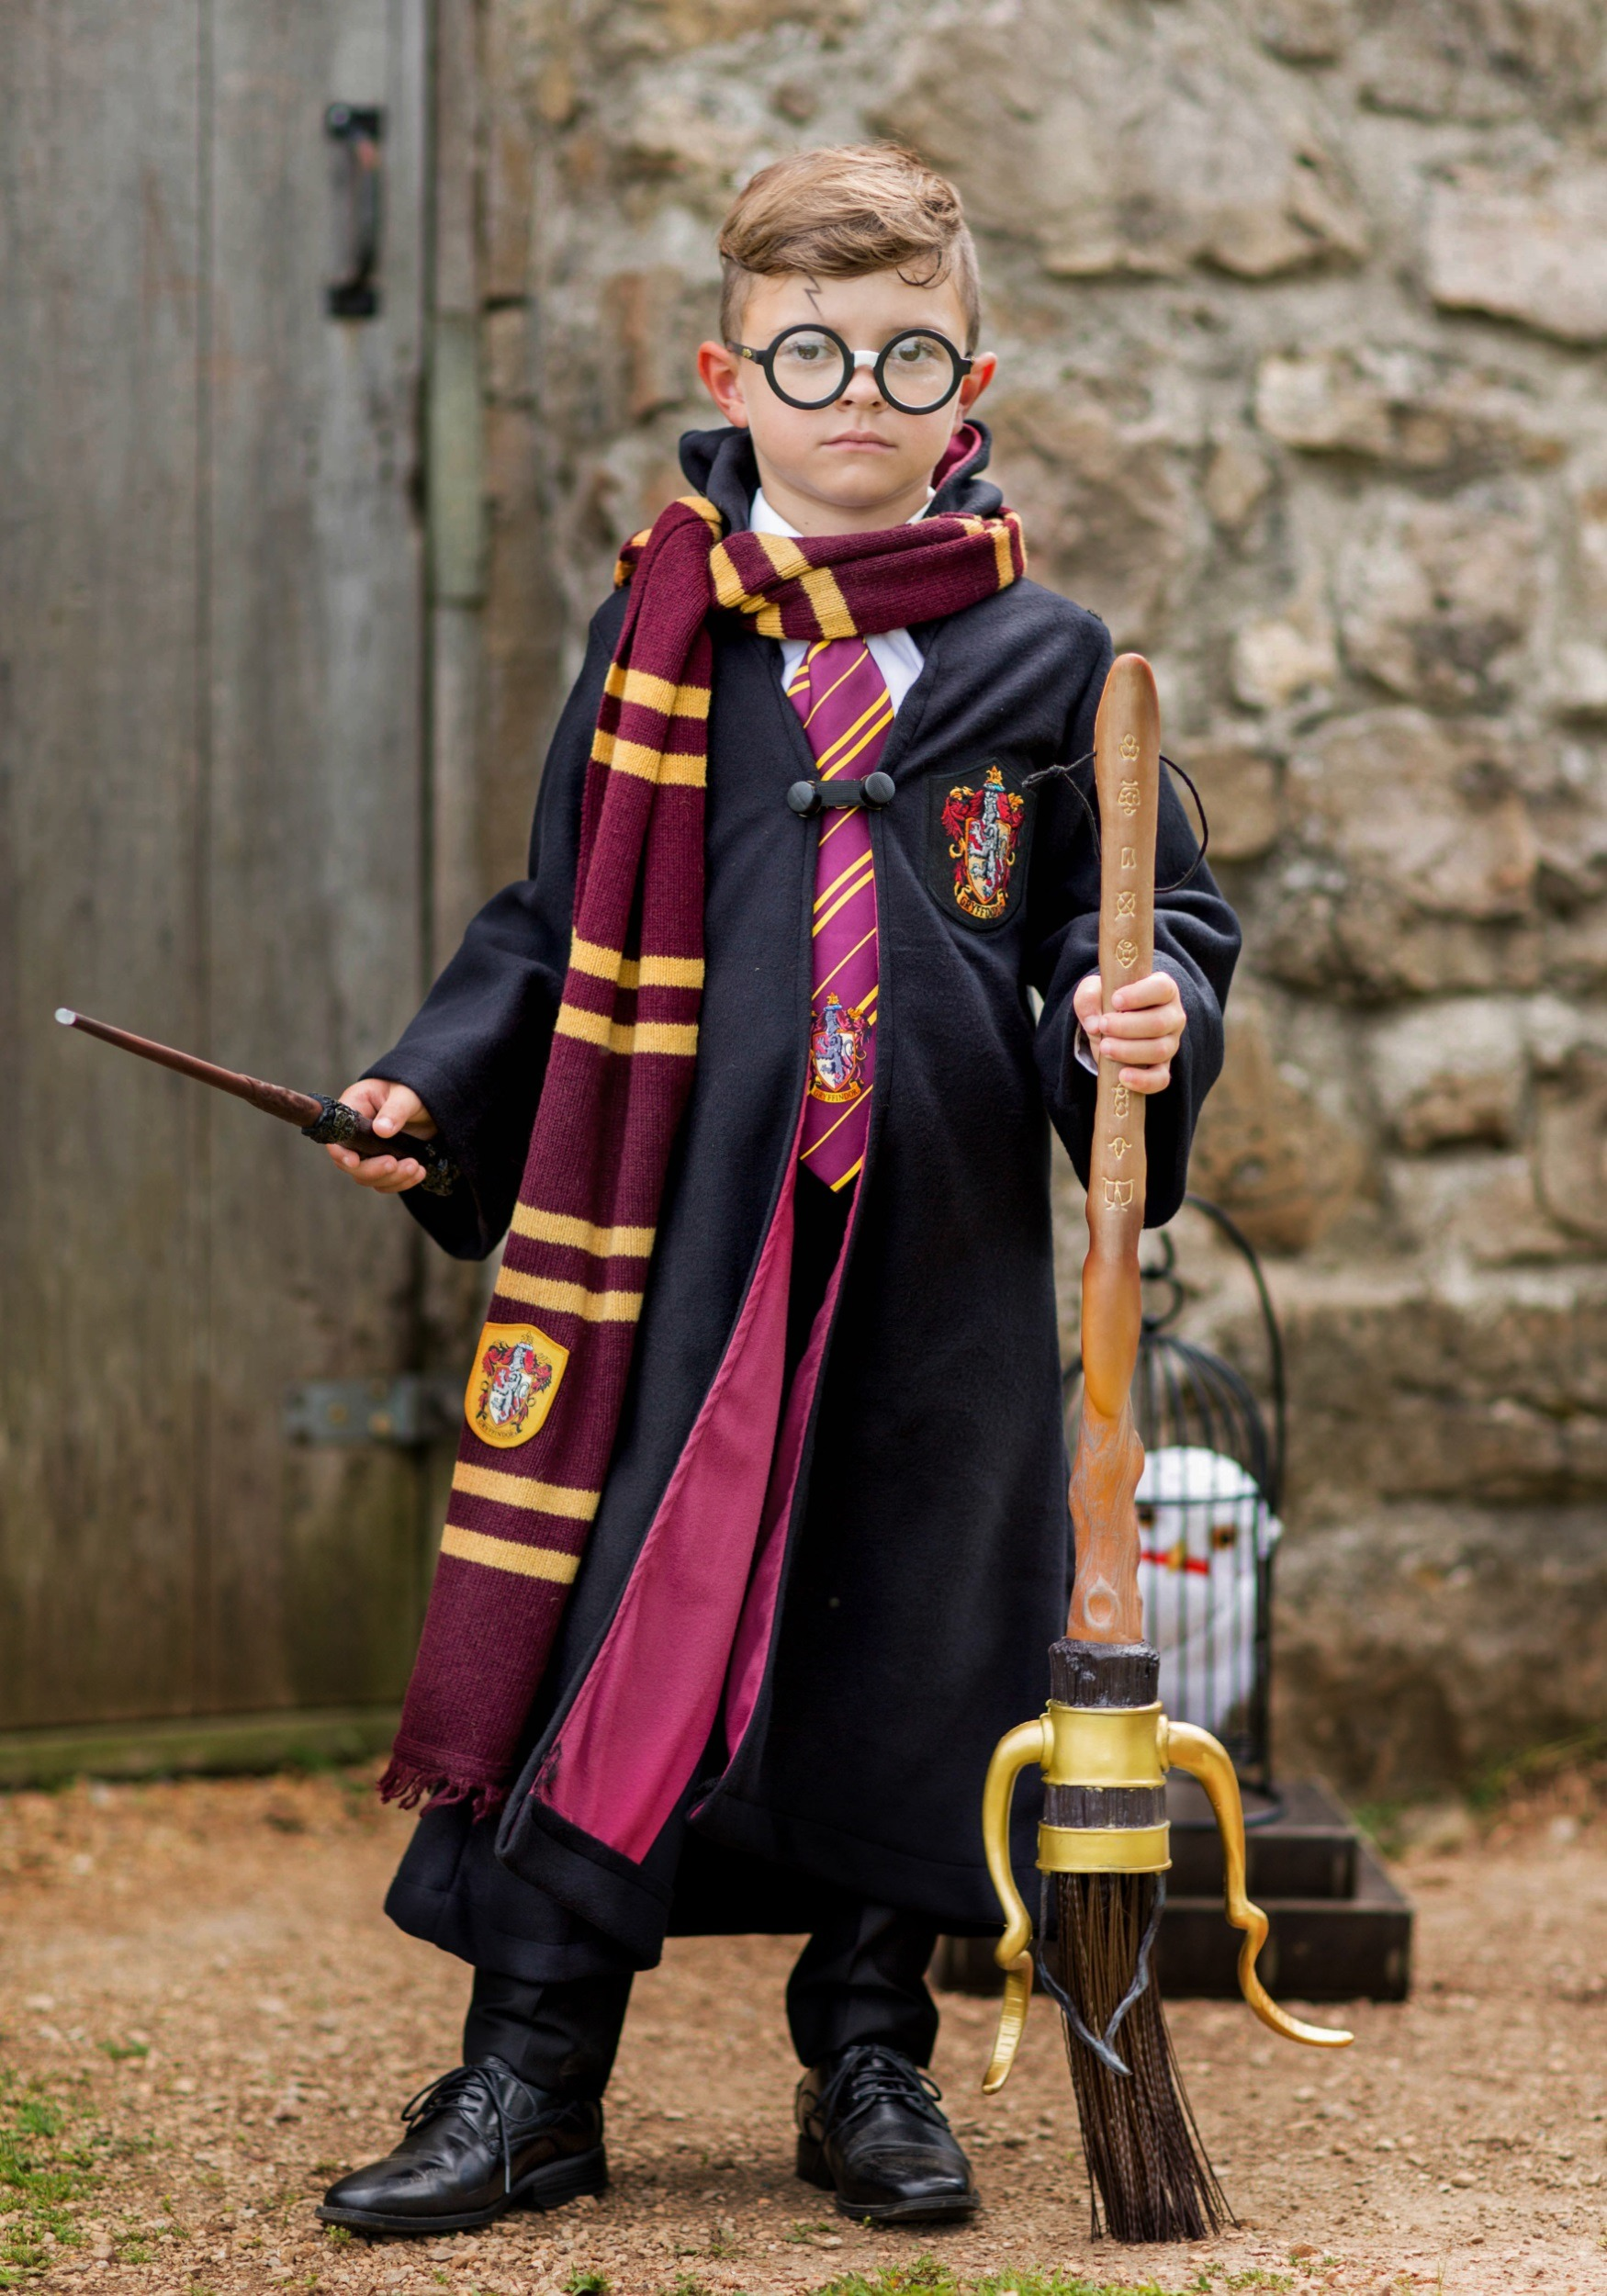 Child deluxe harry potter costume child deluxe harry potter costume solutioingenieria